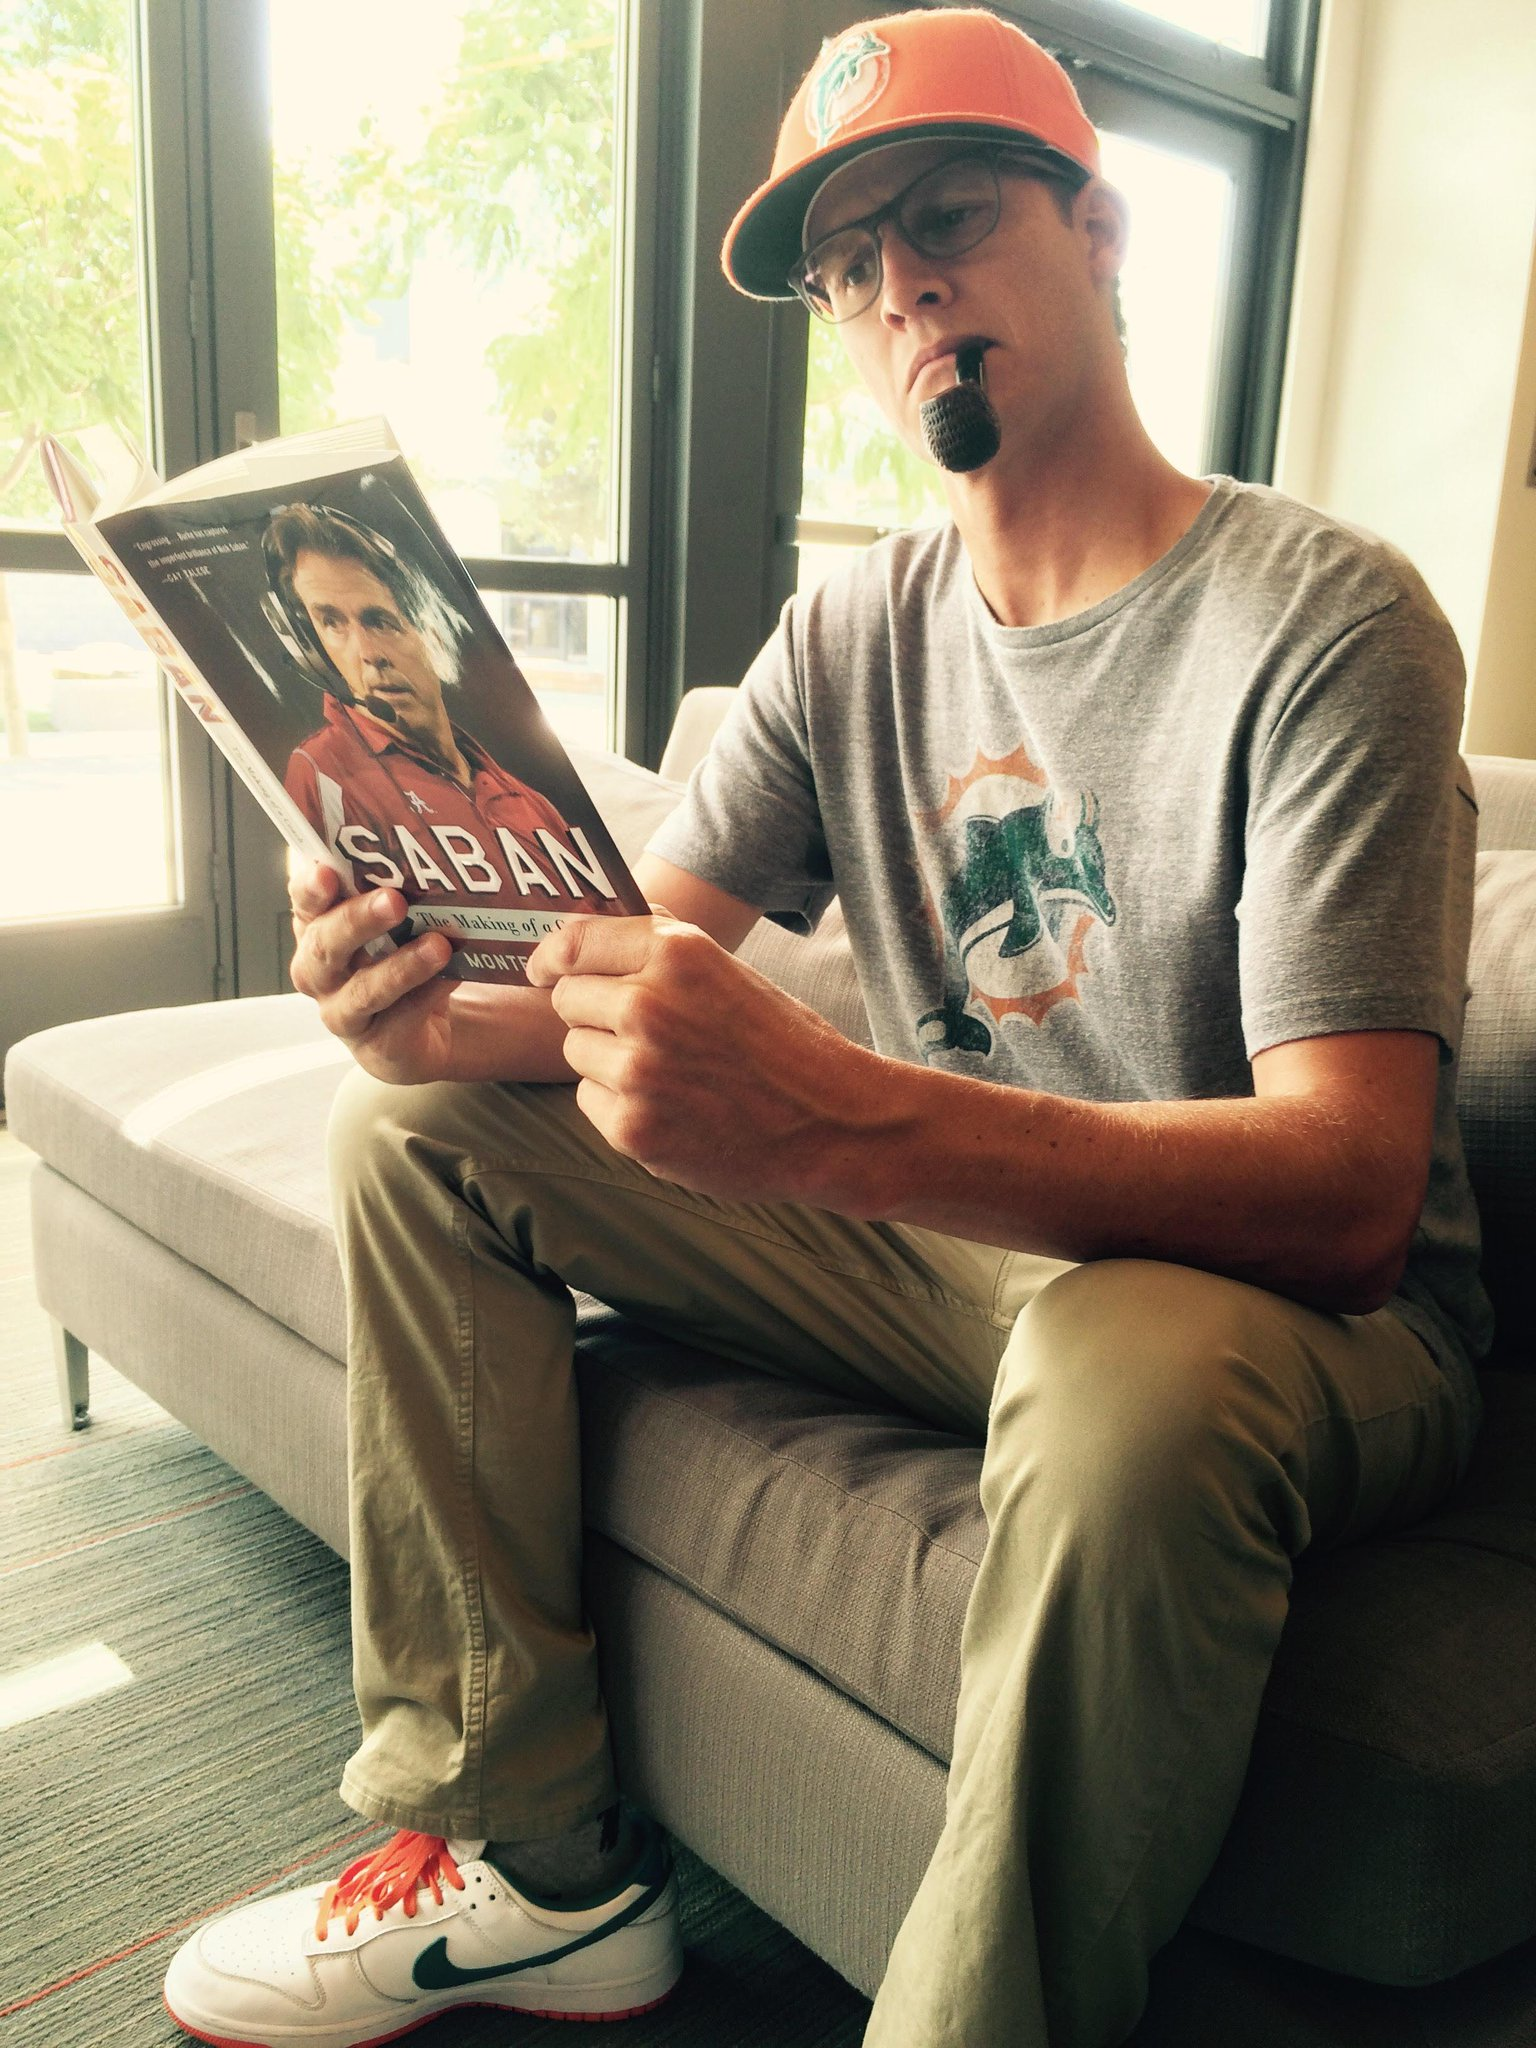 just finishing up some light summer reading. full book report on tomorrow's season premiere. #tosh http://t.co/7CRJzZu5zU